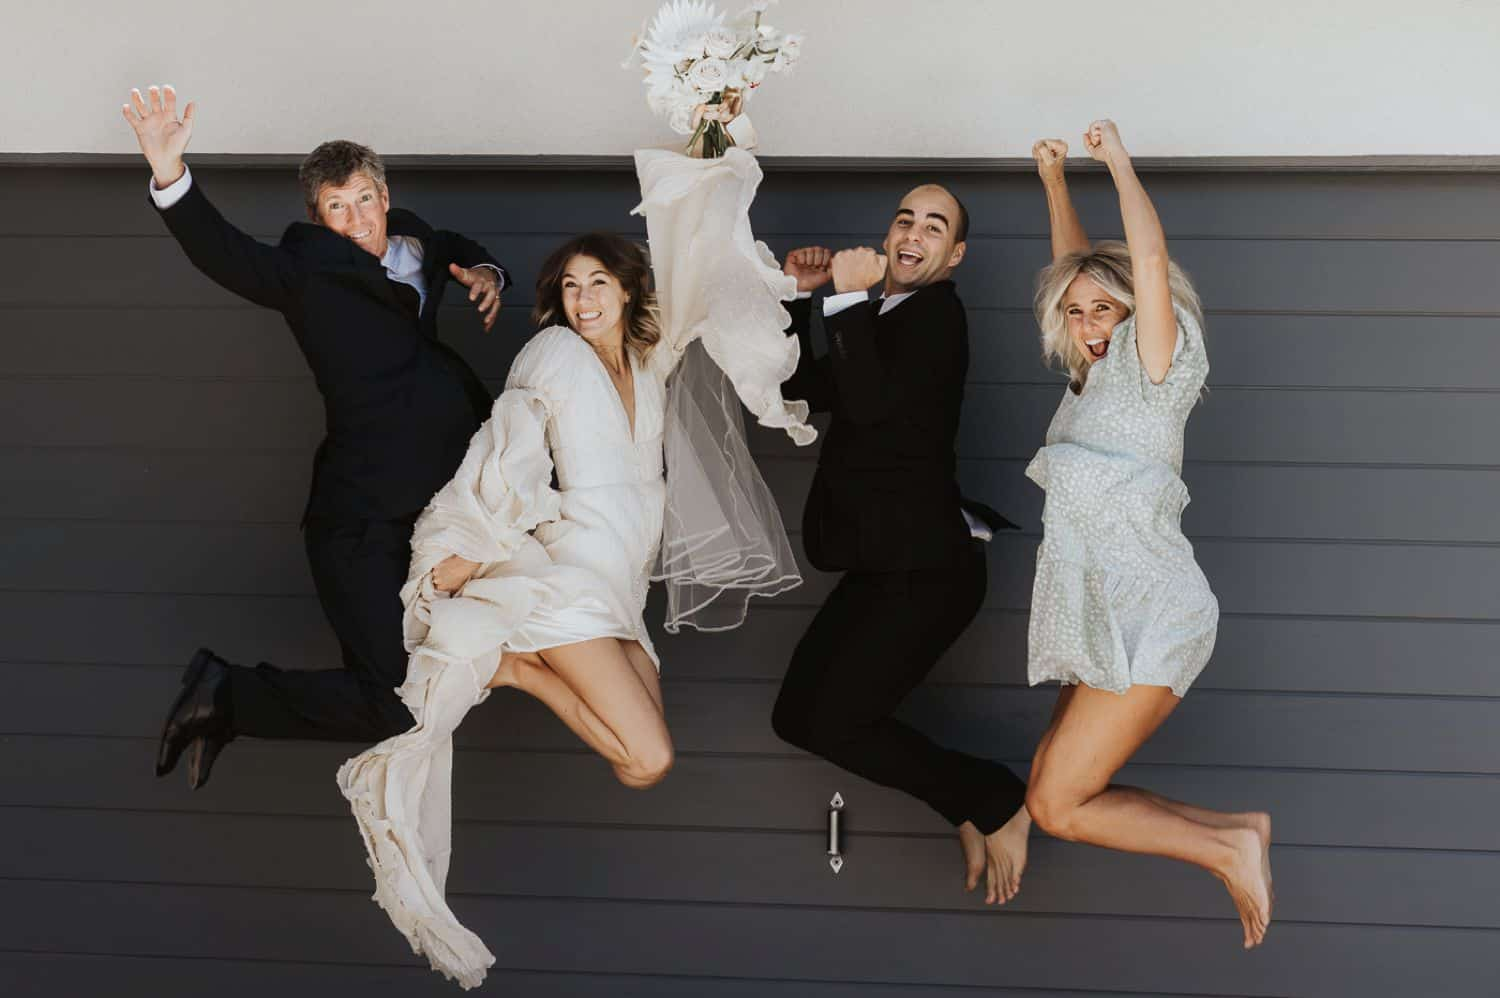 Family members jump in the air for a silly wedding day portrait